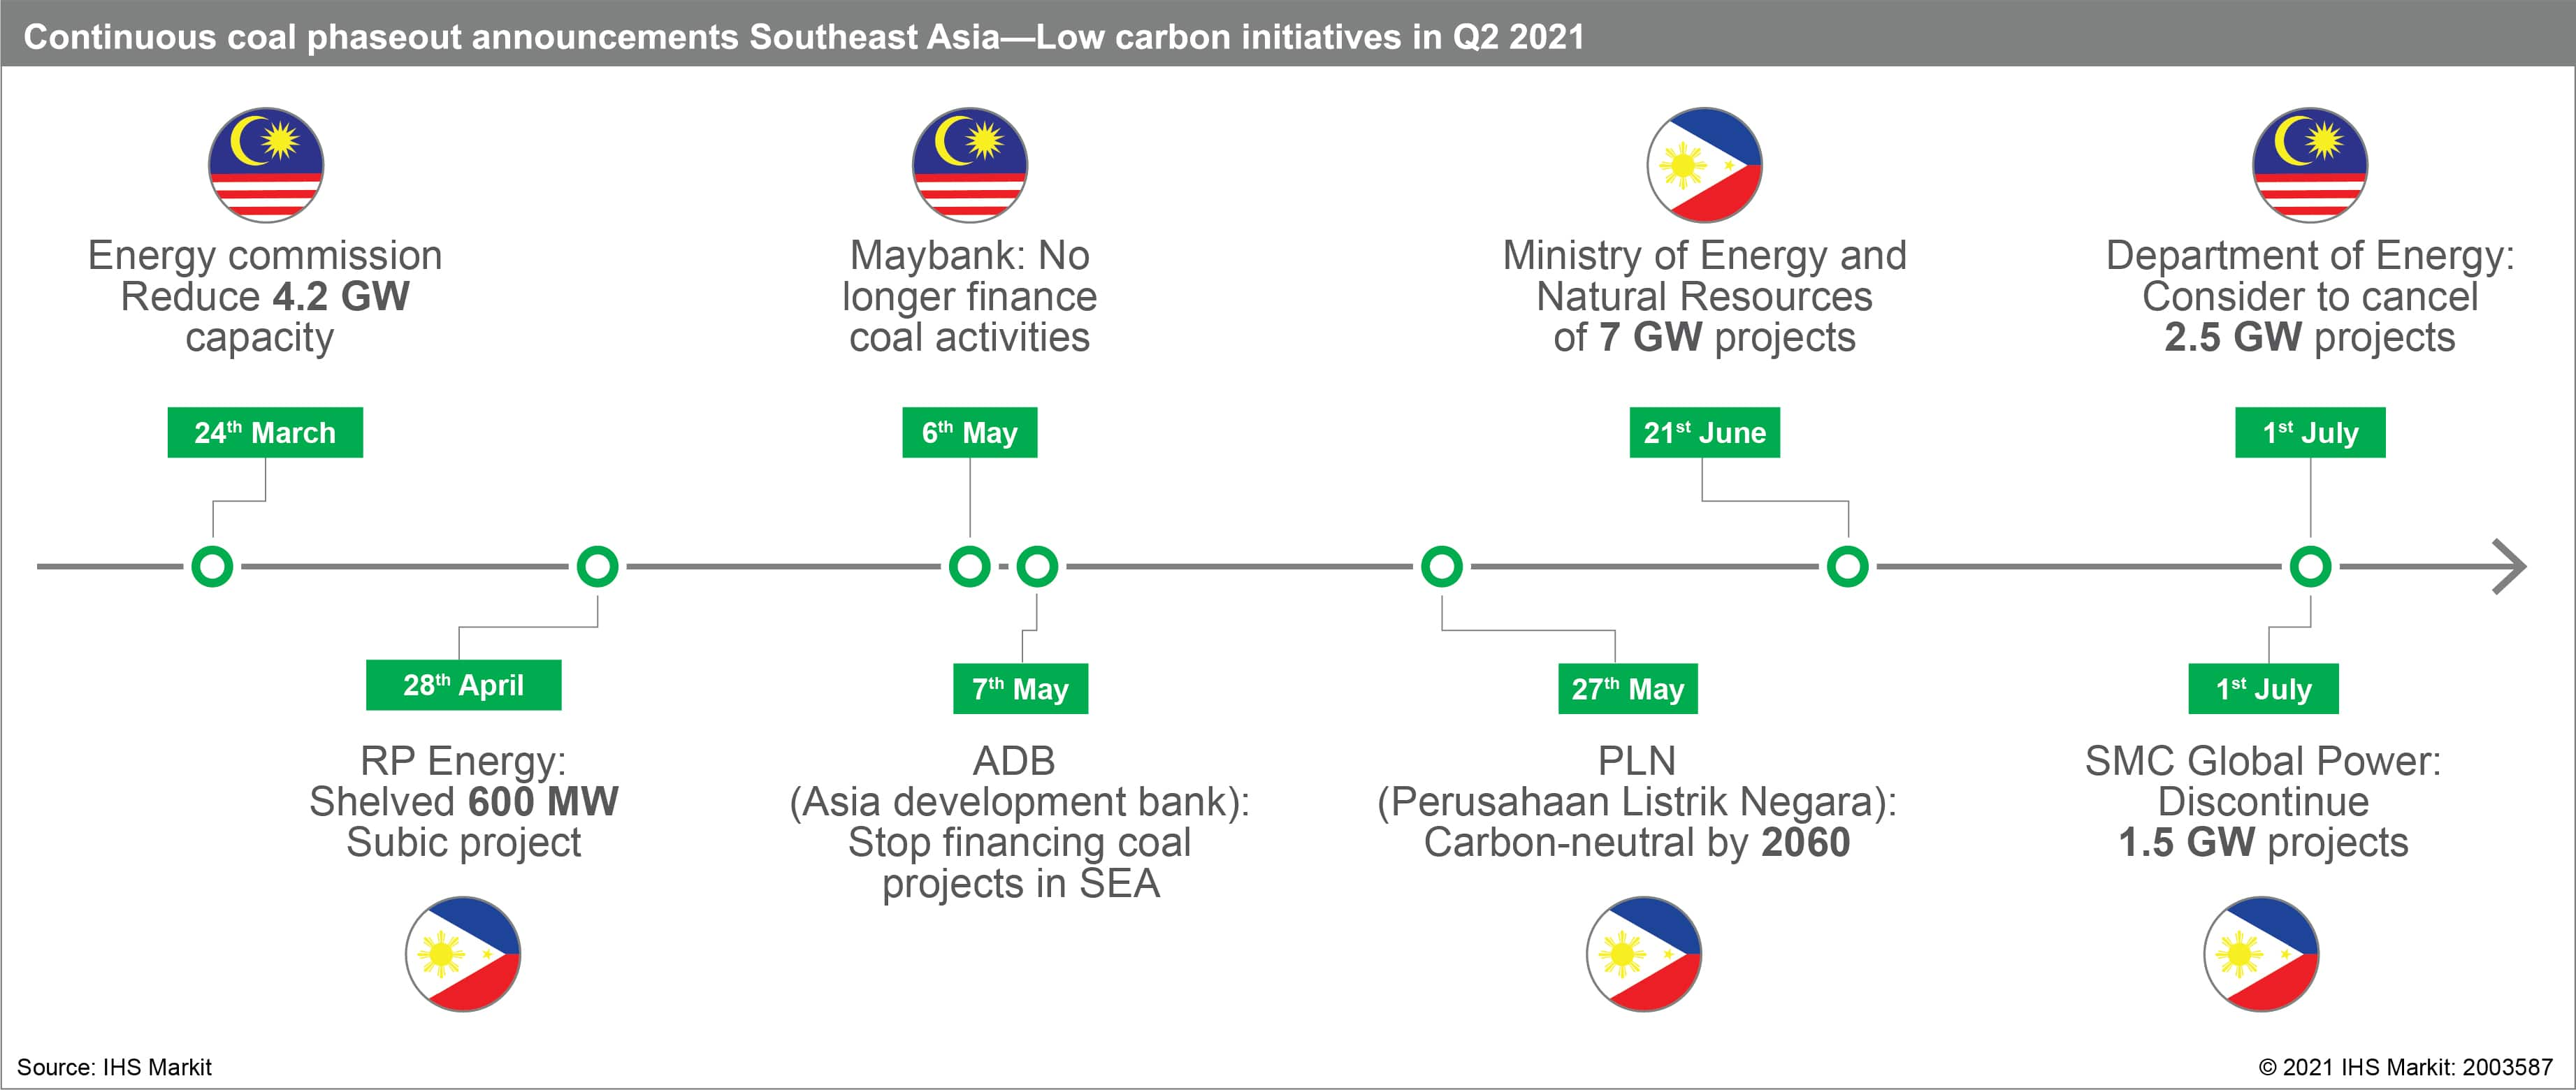 Continuous coal phaseout announcements Southeast Asia